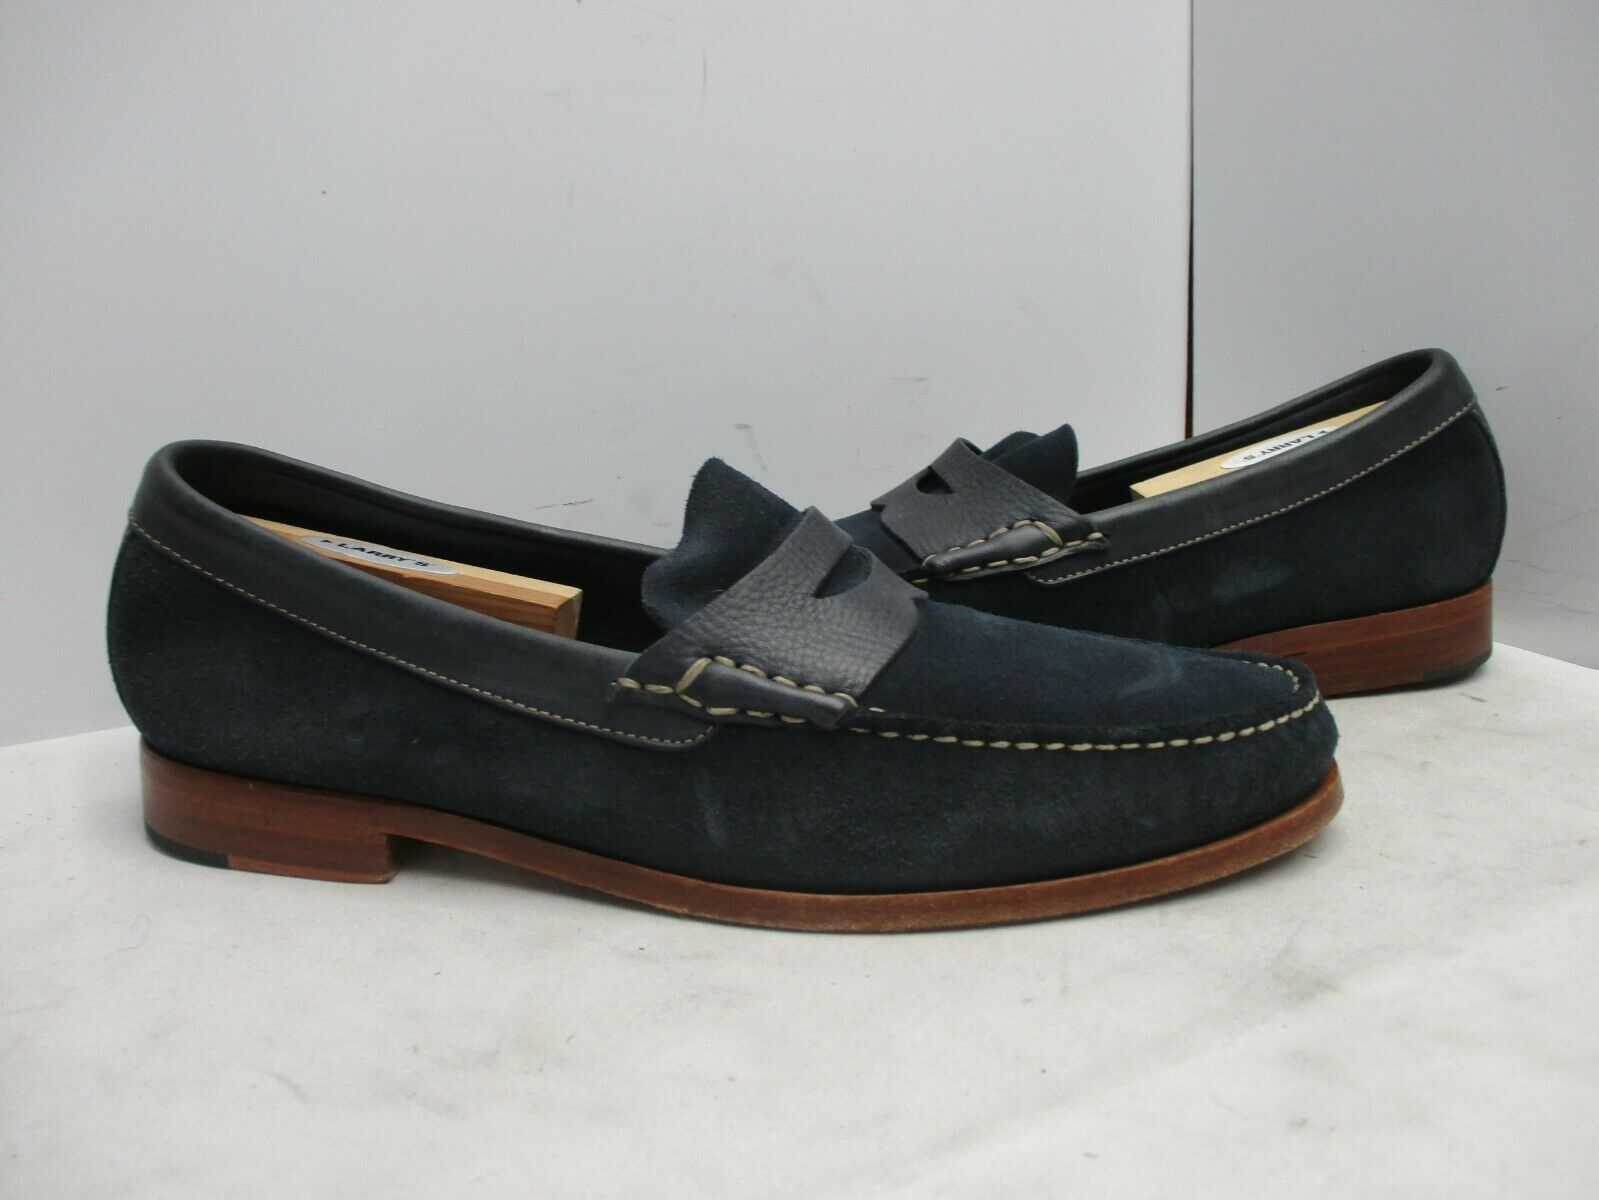 Johnston & Murphy Blue Suede Leather Slip On Loafers Mens Sz 11.5 M Style 201499